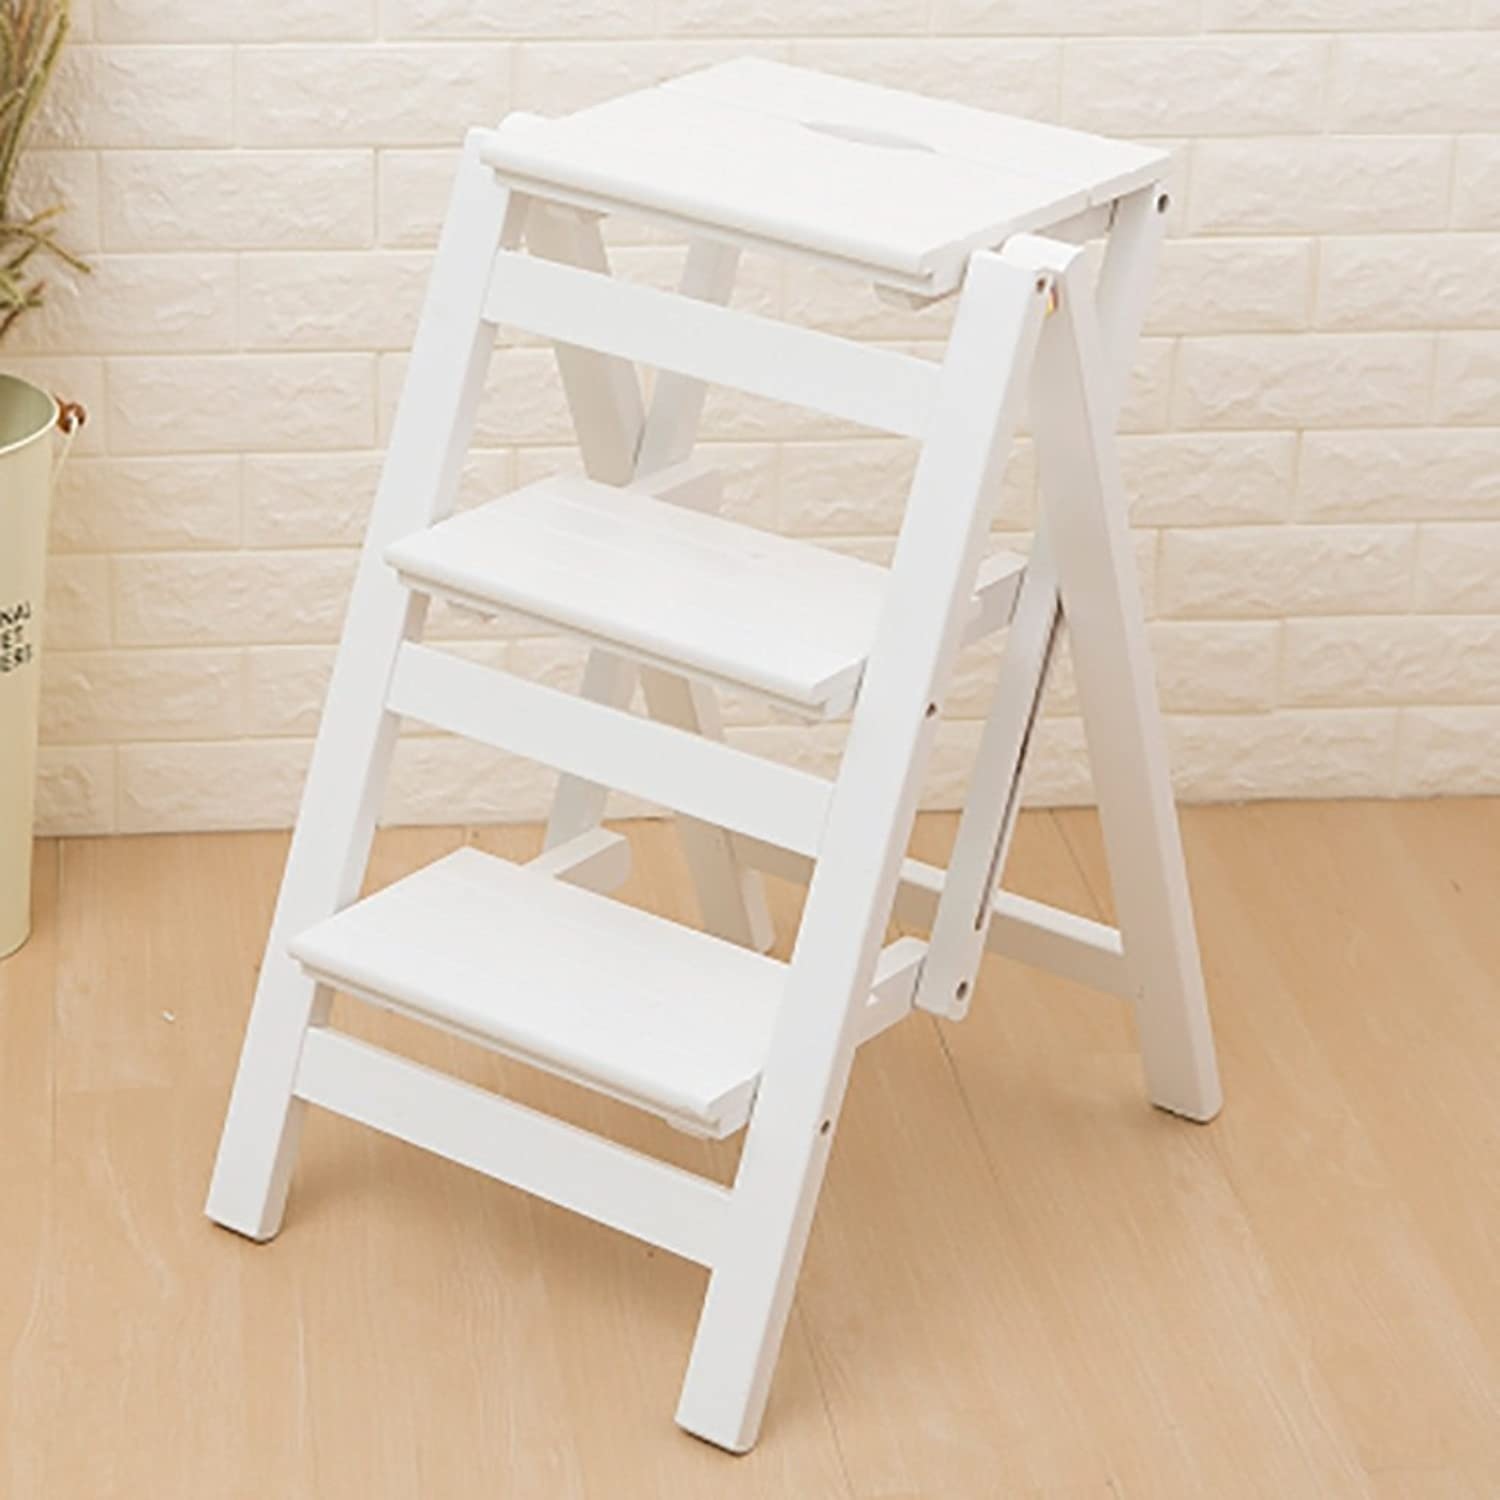 YQRYP Non-Slip Step Stool Step Stool Solid Wood,Folding Ladder Shelf 3 Steps-Flower Stand Household Multifunction Ascend Ladder Small Ladder Slip Resistant,Durable,Household,Outdoor (color   2 )